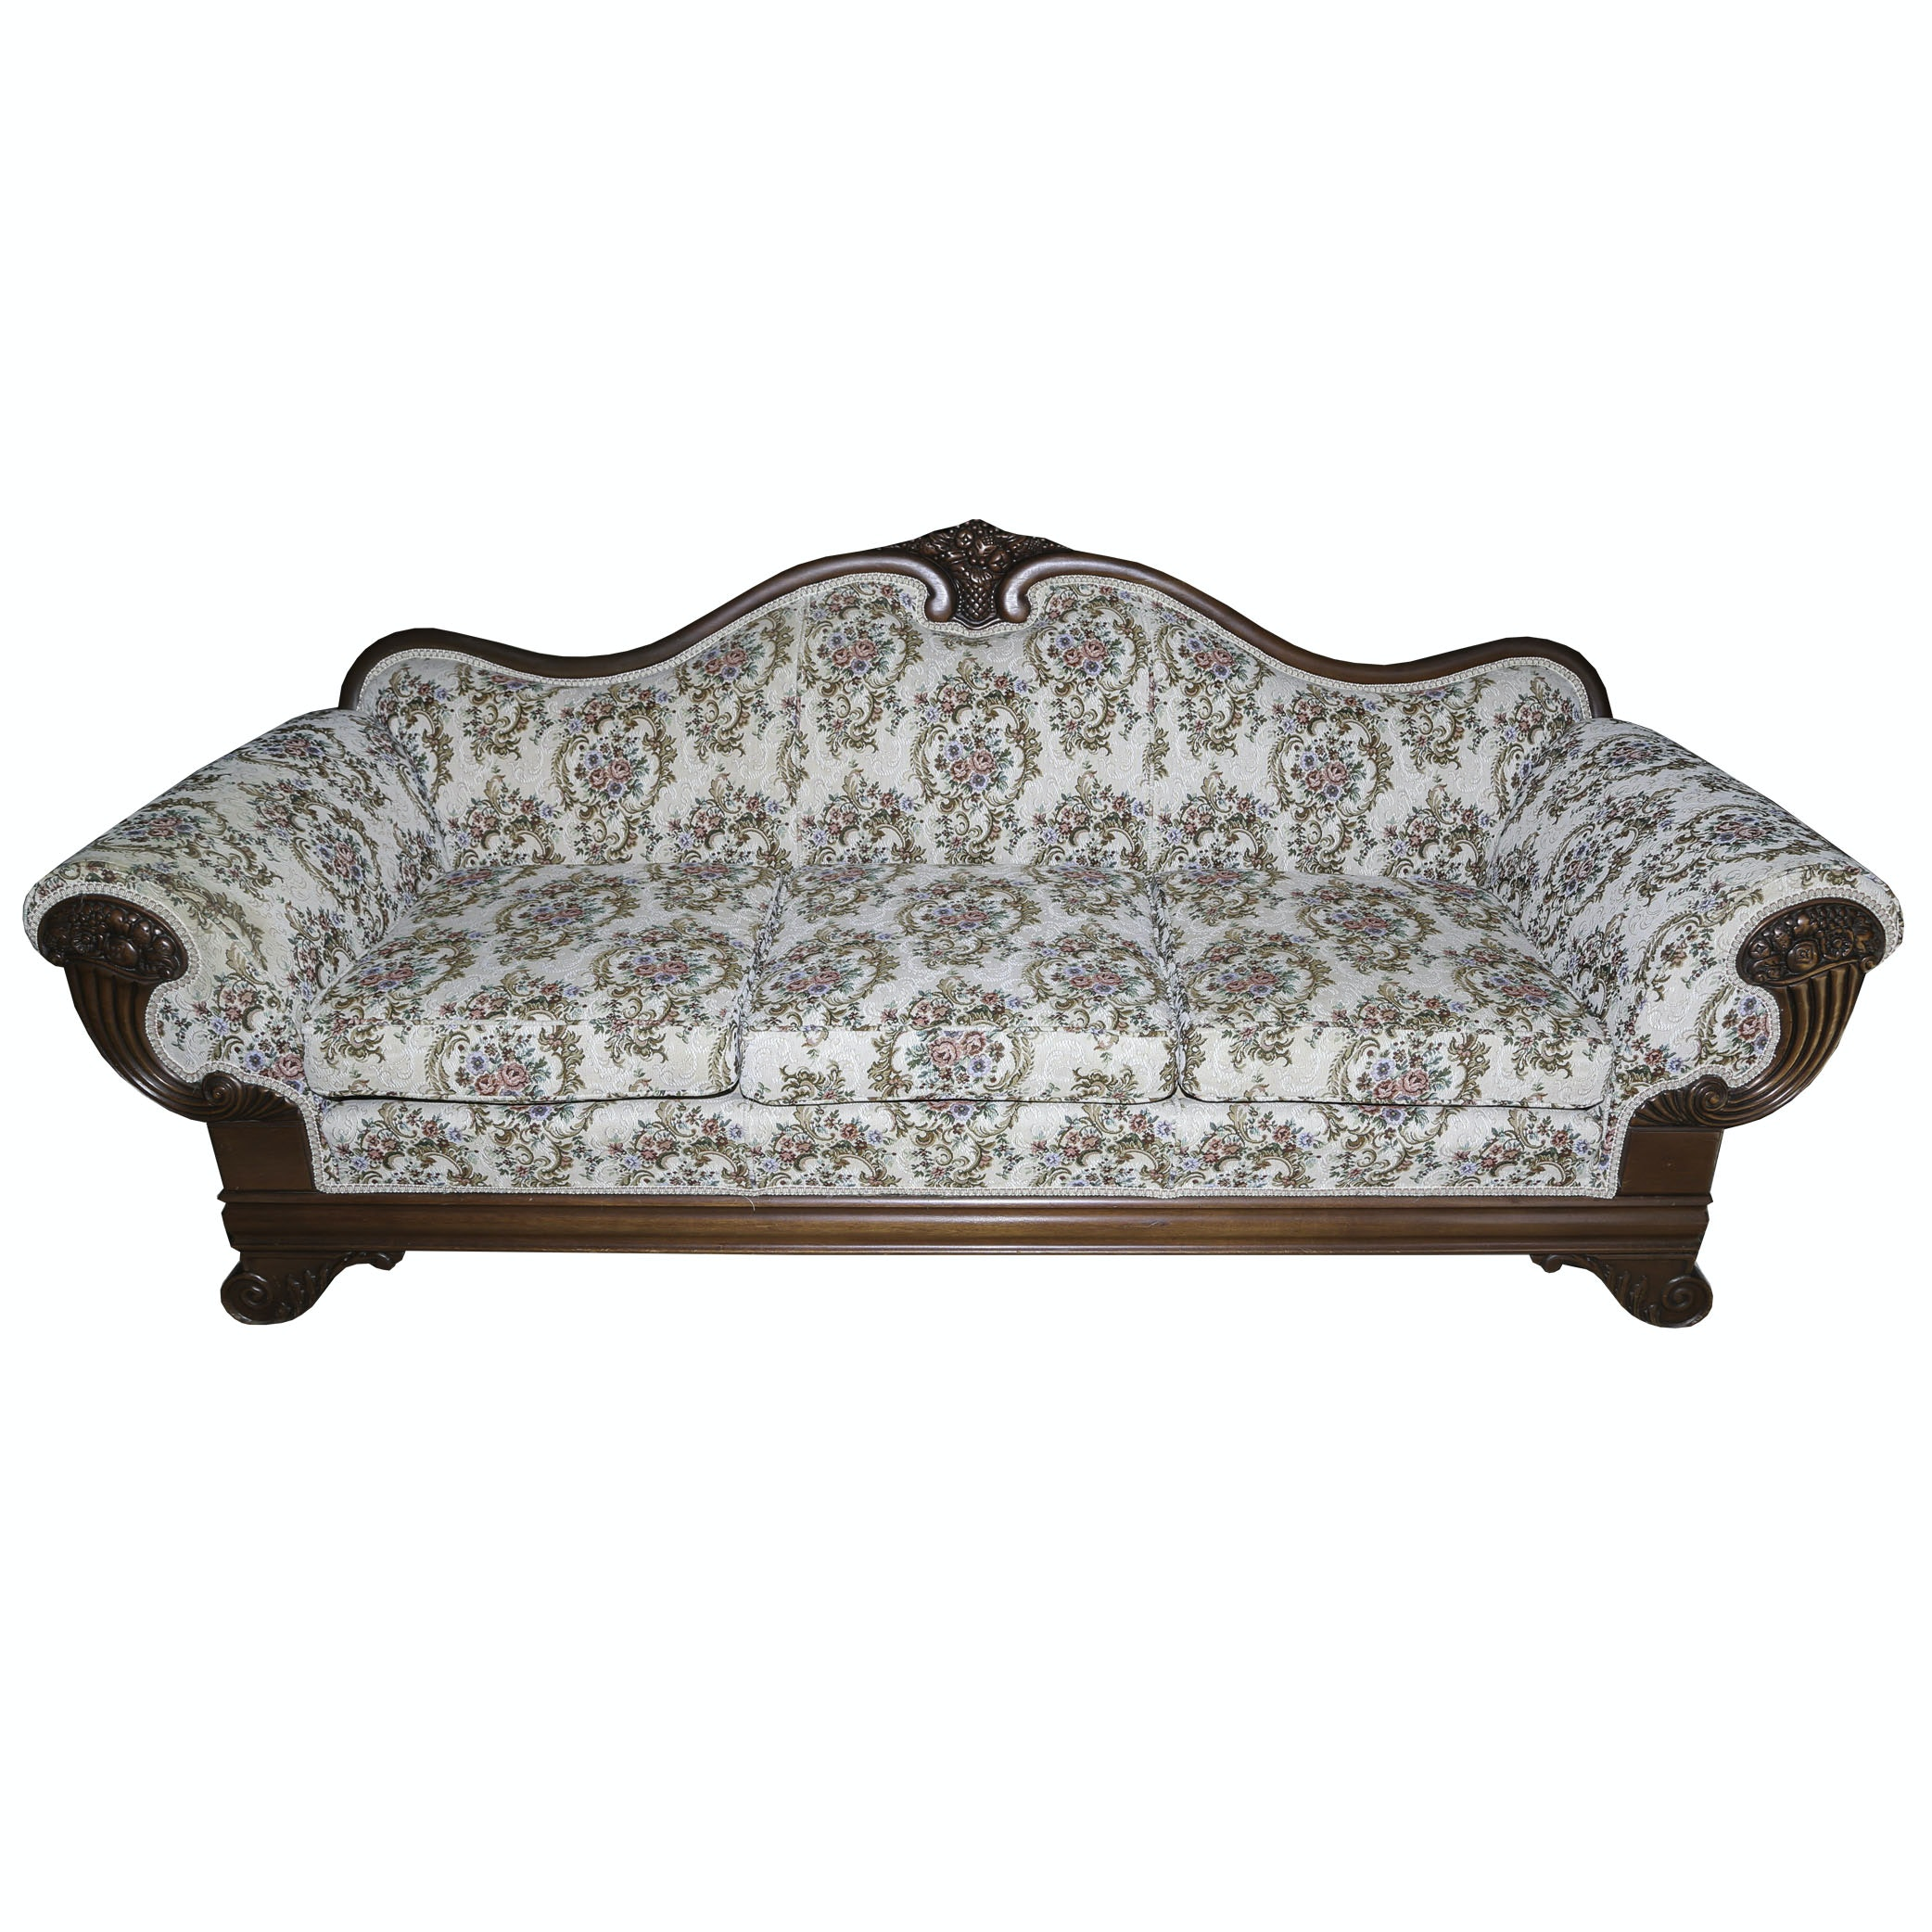 Empire Style Upholstered Sofa with Cornucopia Motif, 20th Century